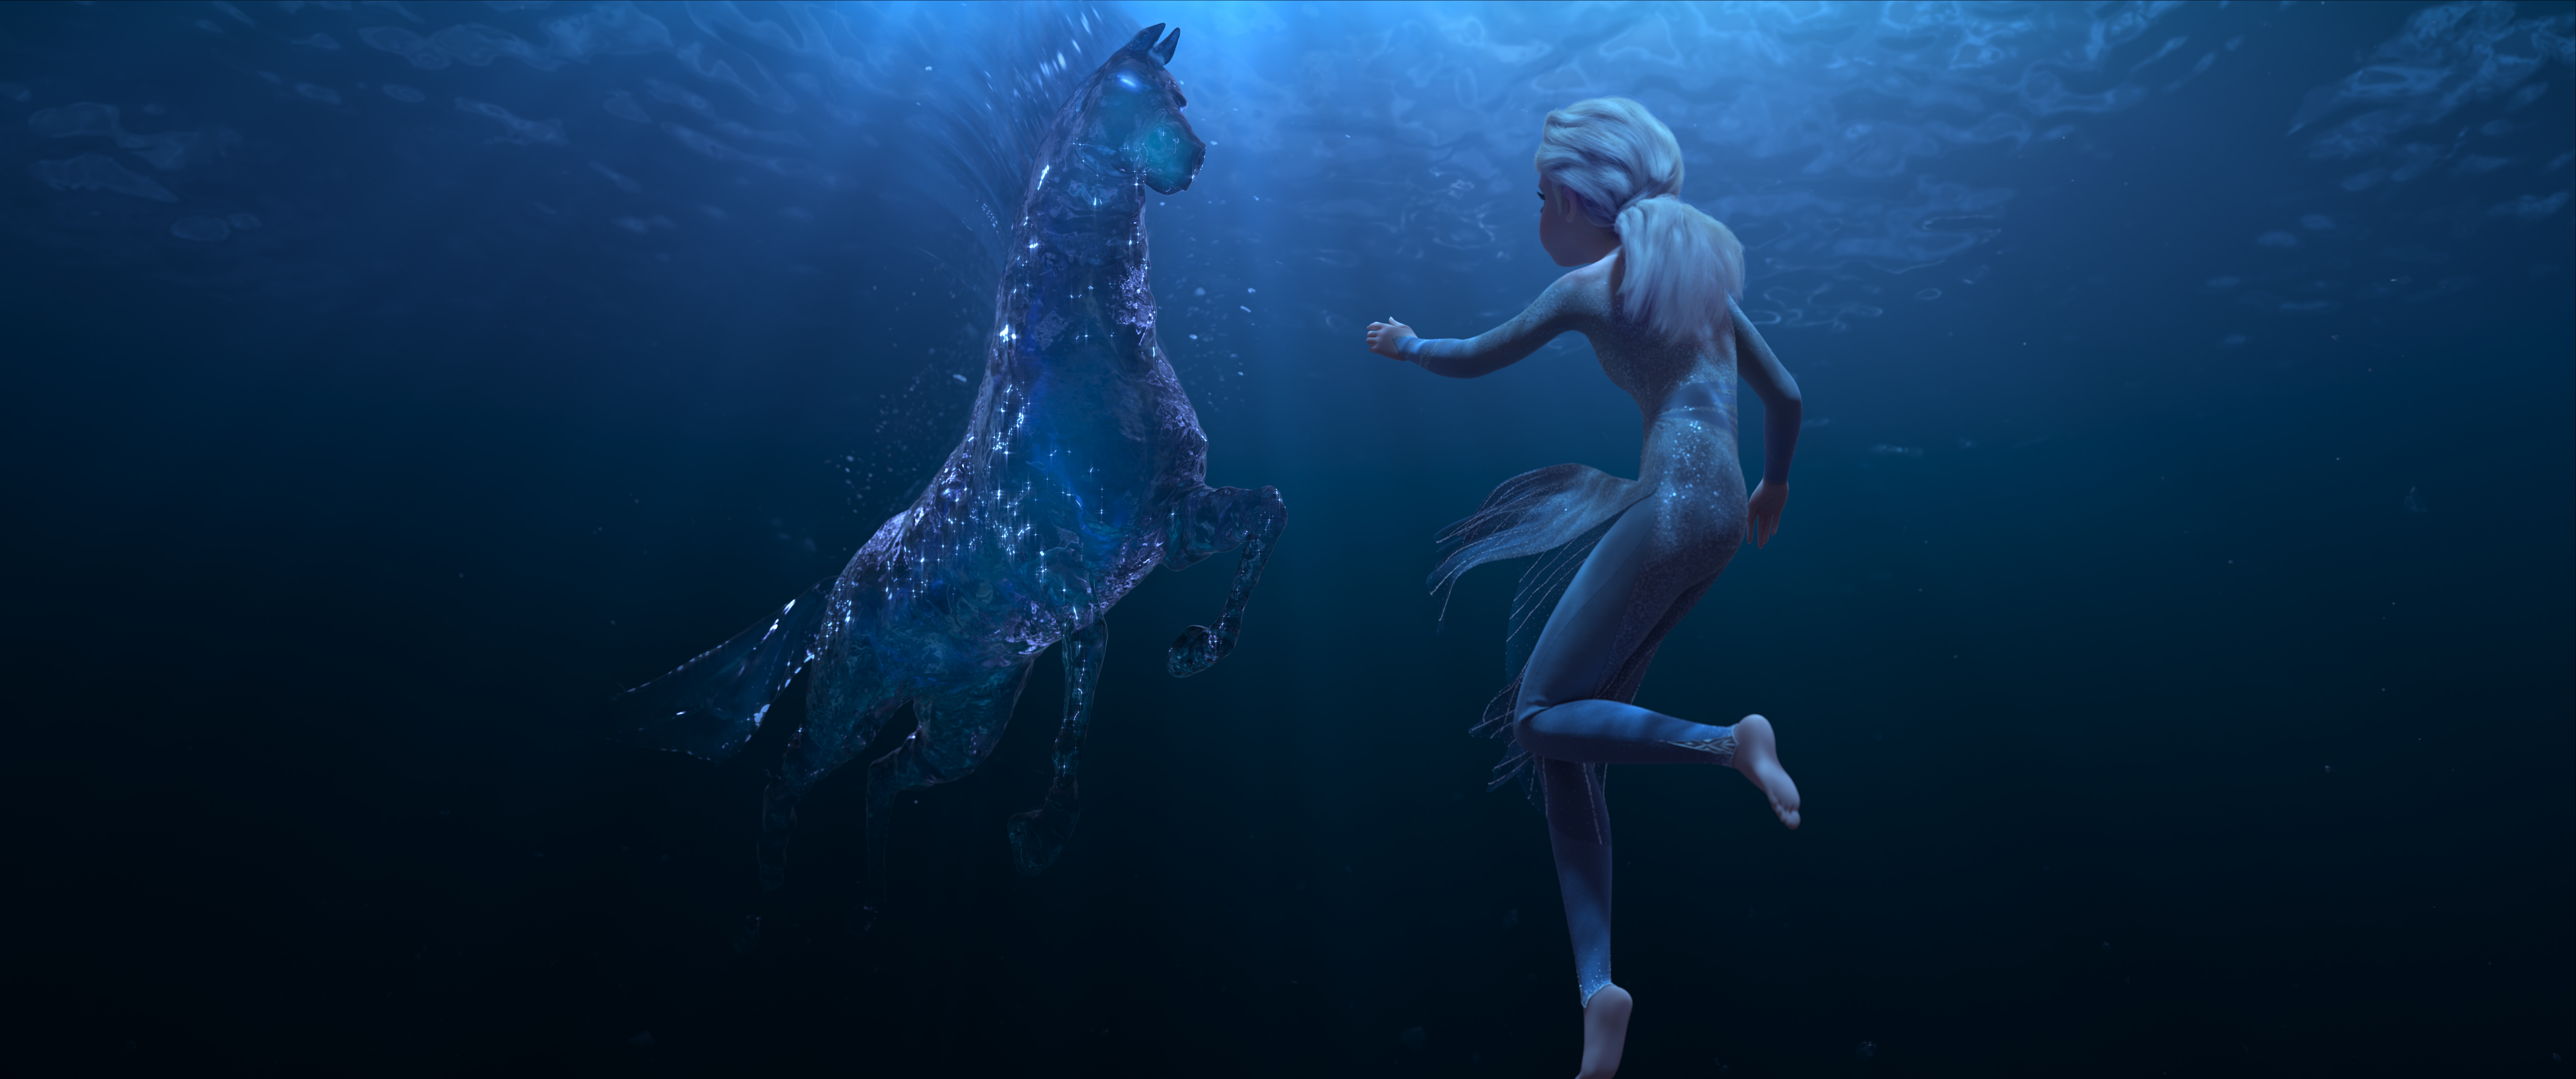 Elsa and Nokk, a mythical water spirit in Frozen 2